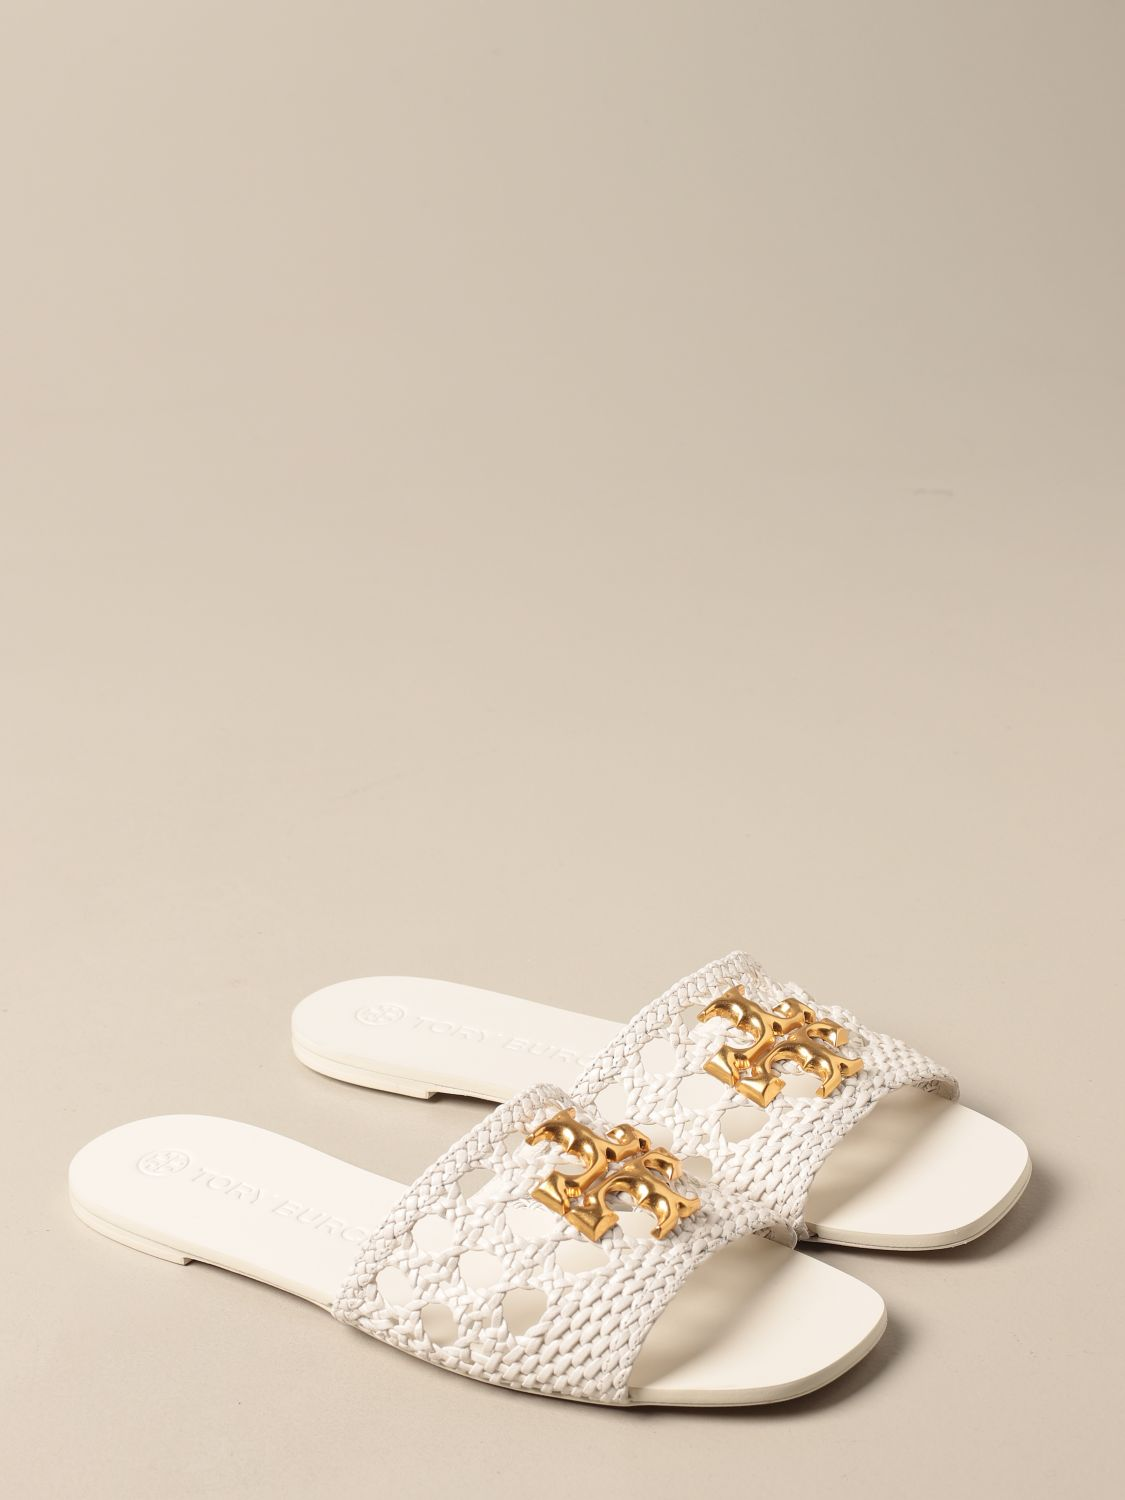 Flat sandals Tory Burch: Tory Burch sandals in woven leather with logo ivory 2